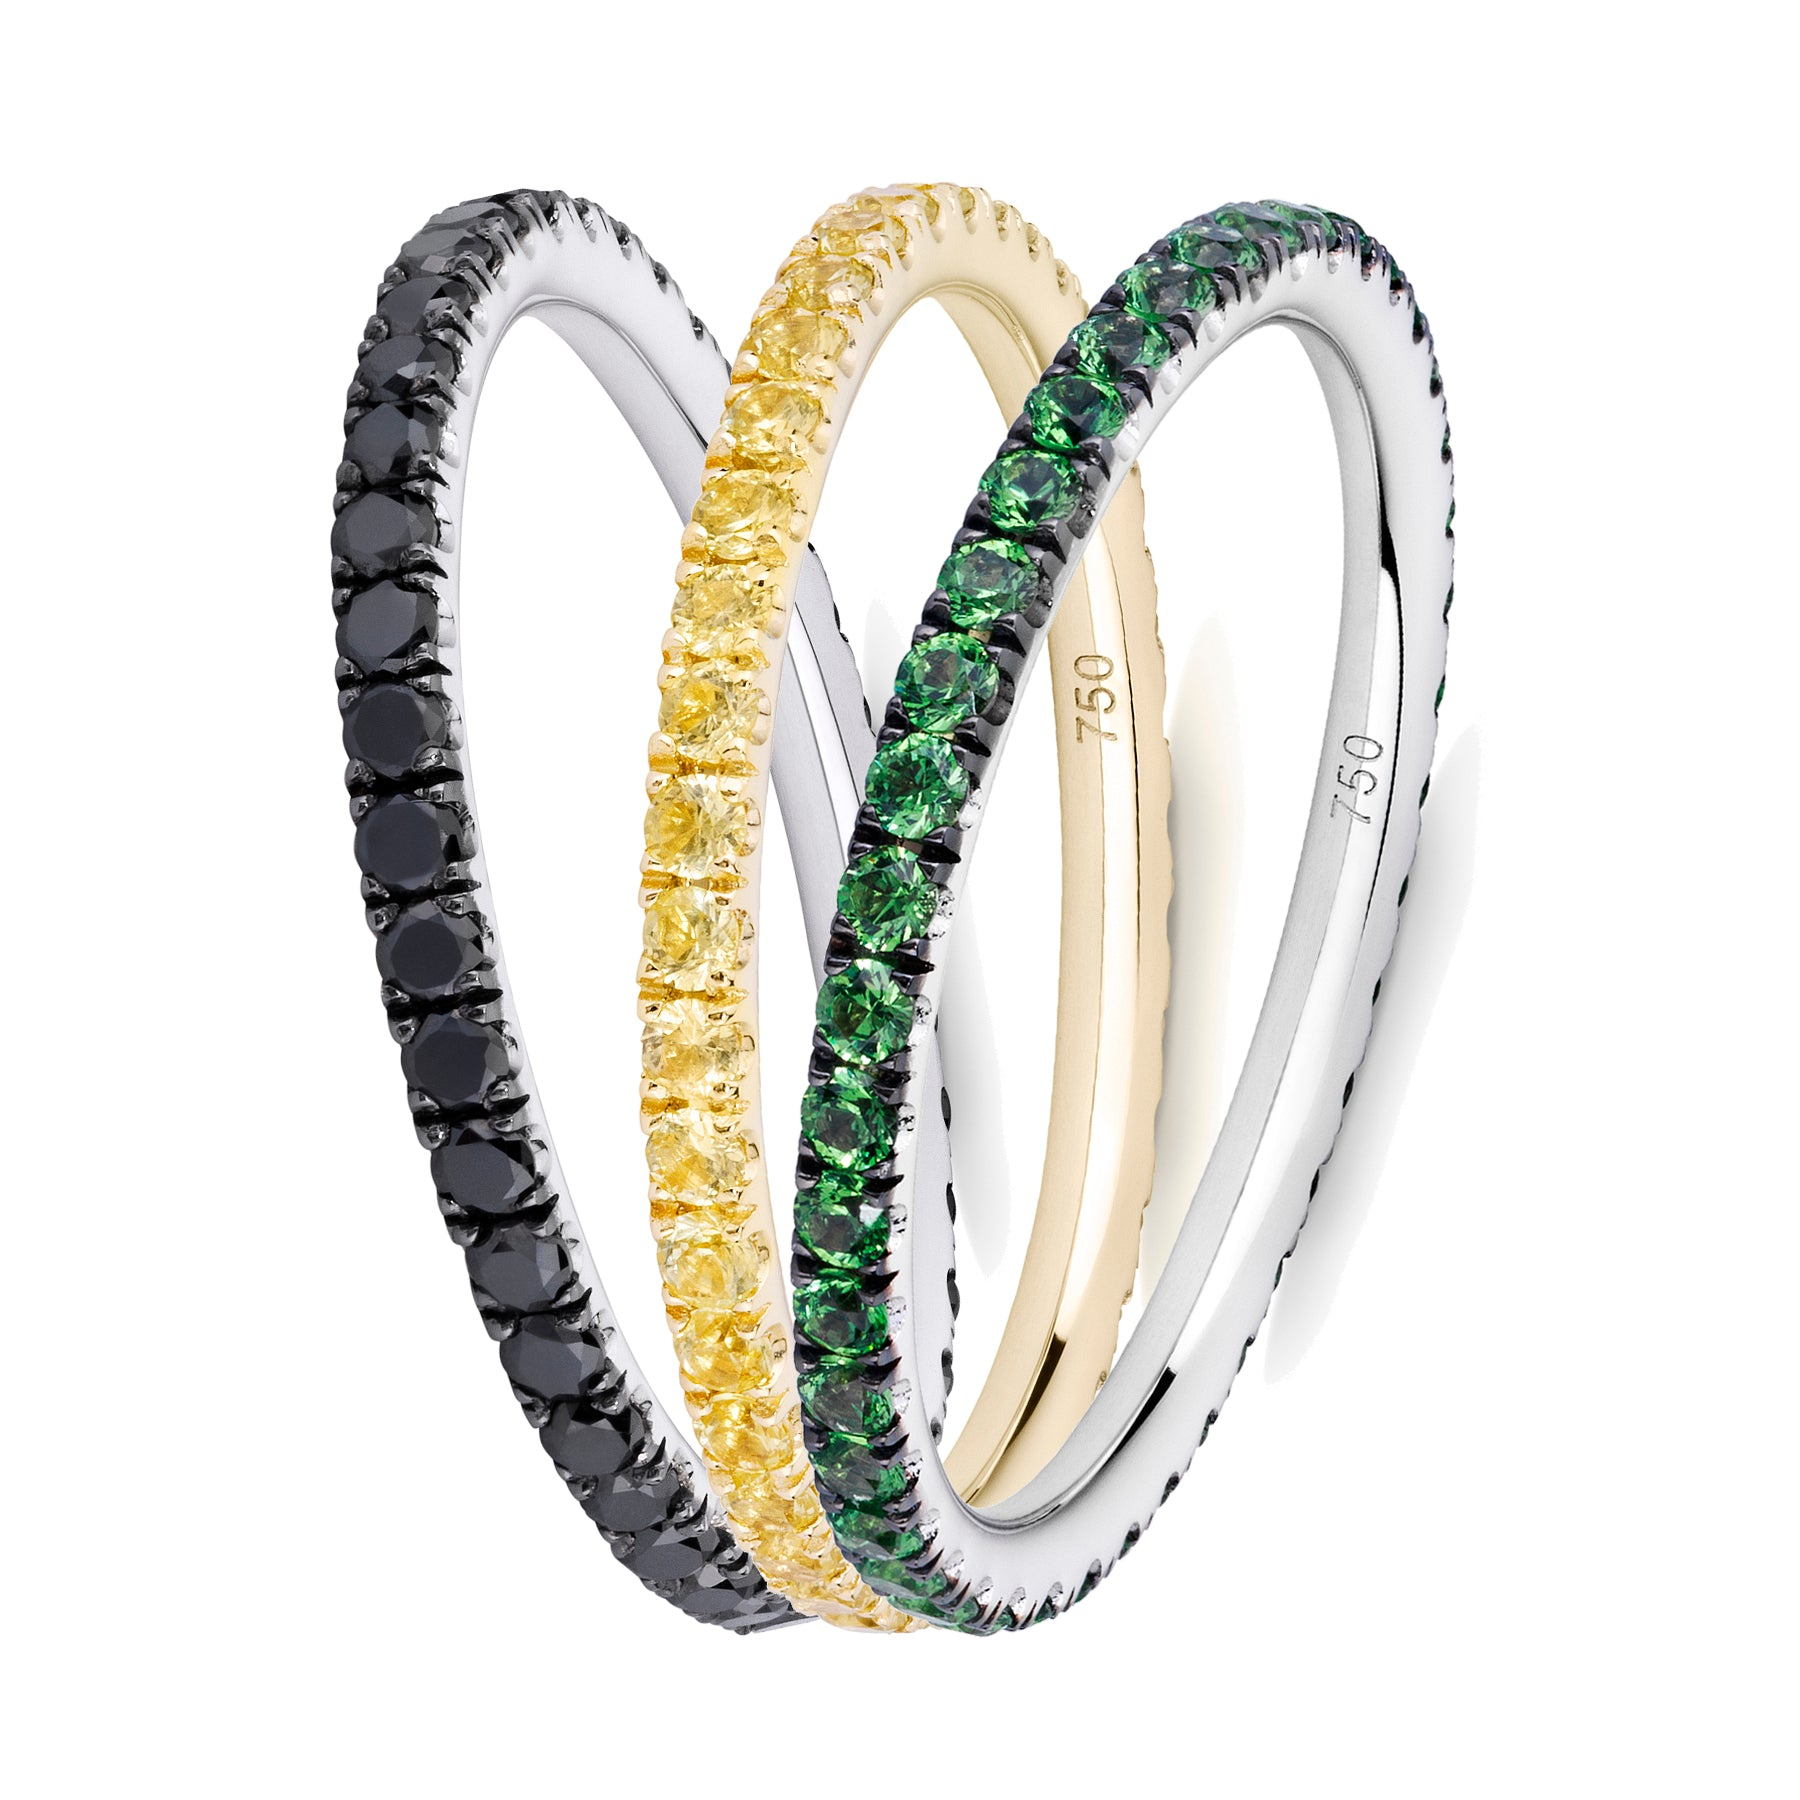 Queen Bee eternity ring stack